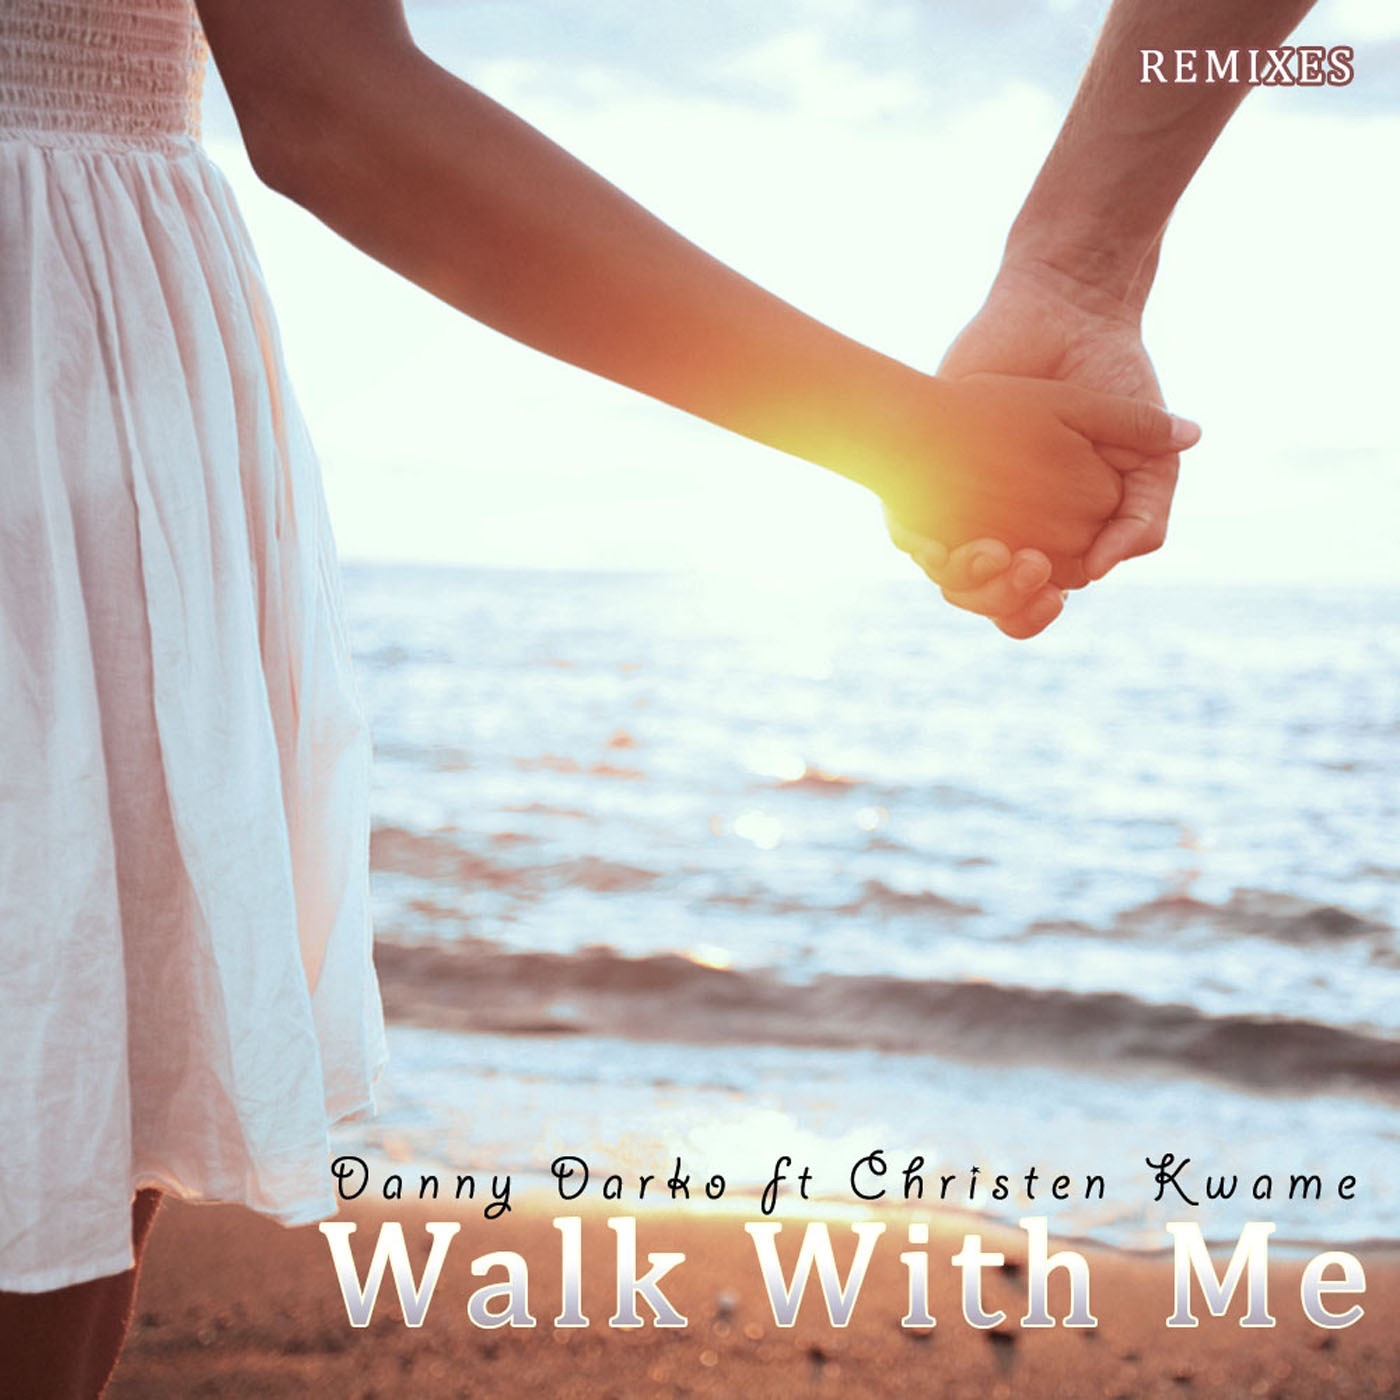 Walk With Me Remixes Part 4 (feat. Christen Kwame) - Single